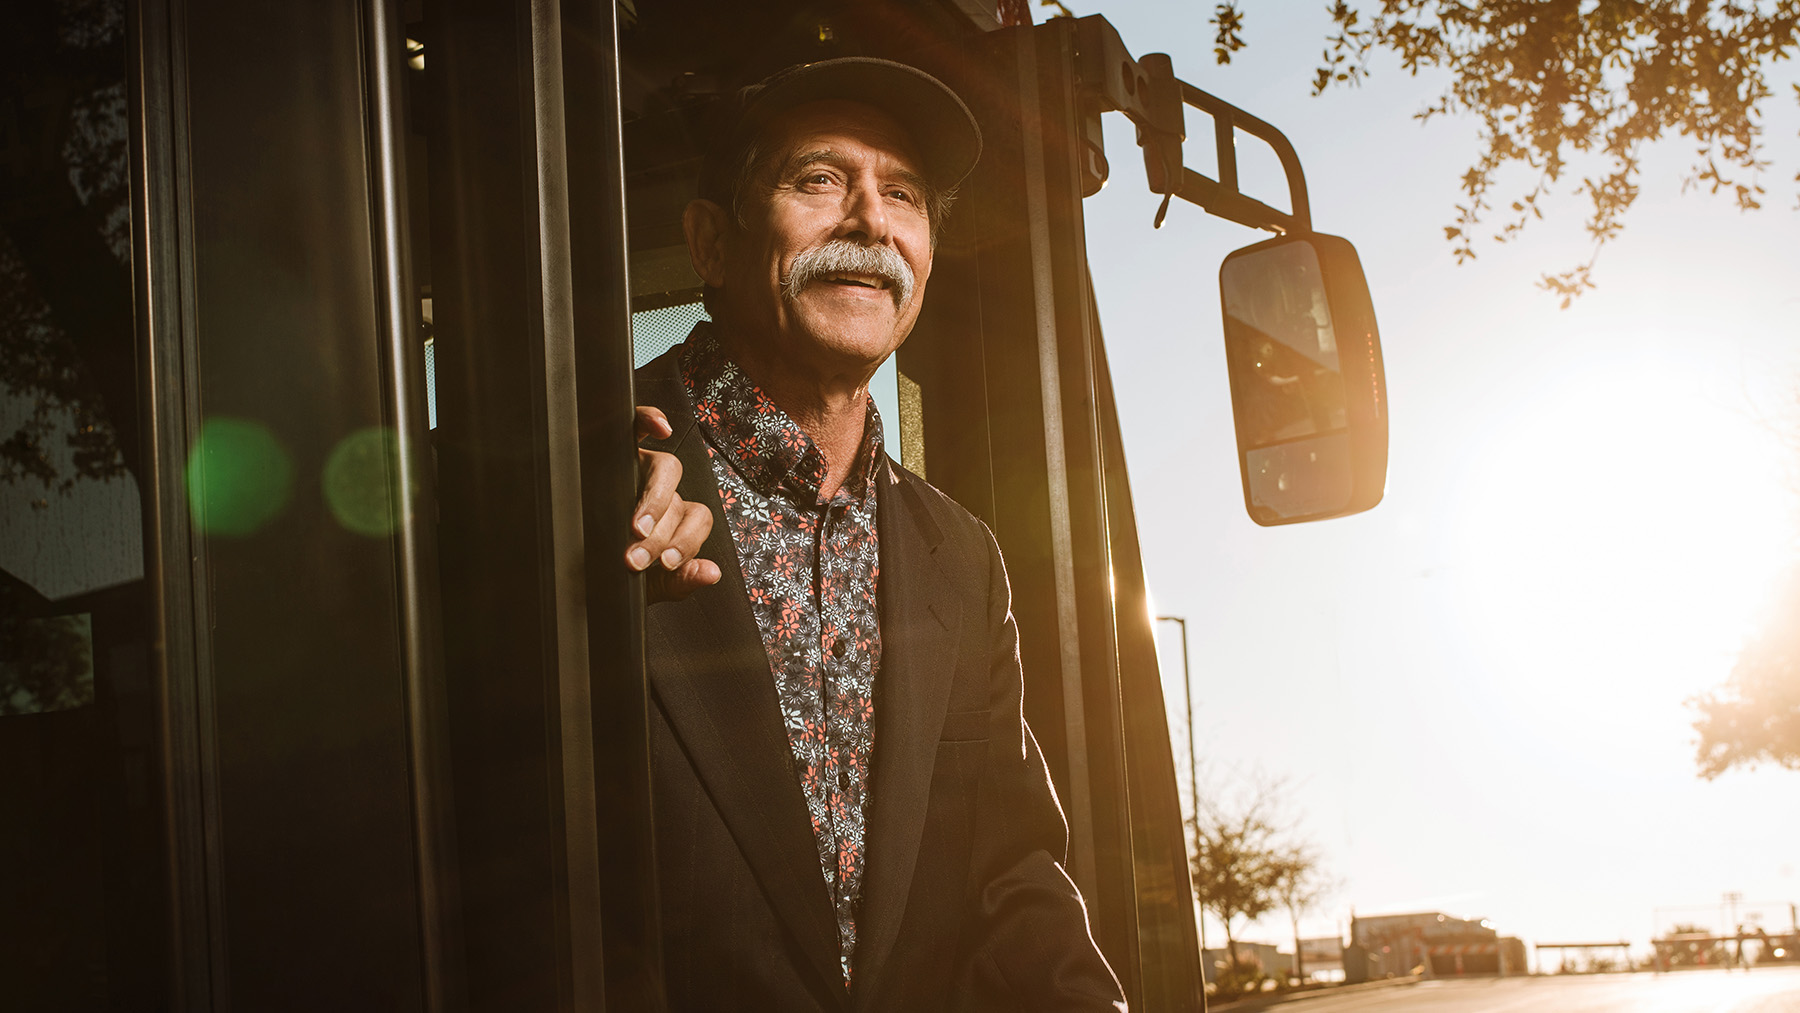 A rider gets off a VIA bus in San Antonio Texas by advertising and commercial photographer, Josh Huskin